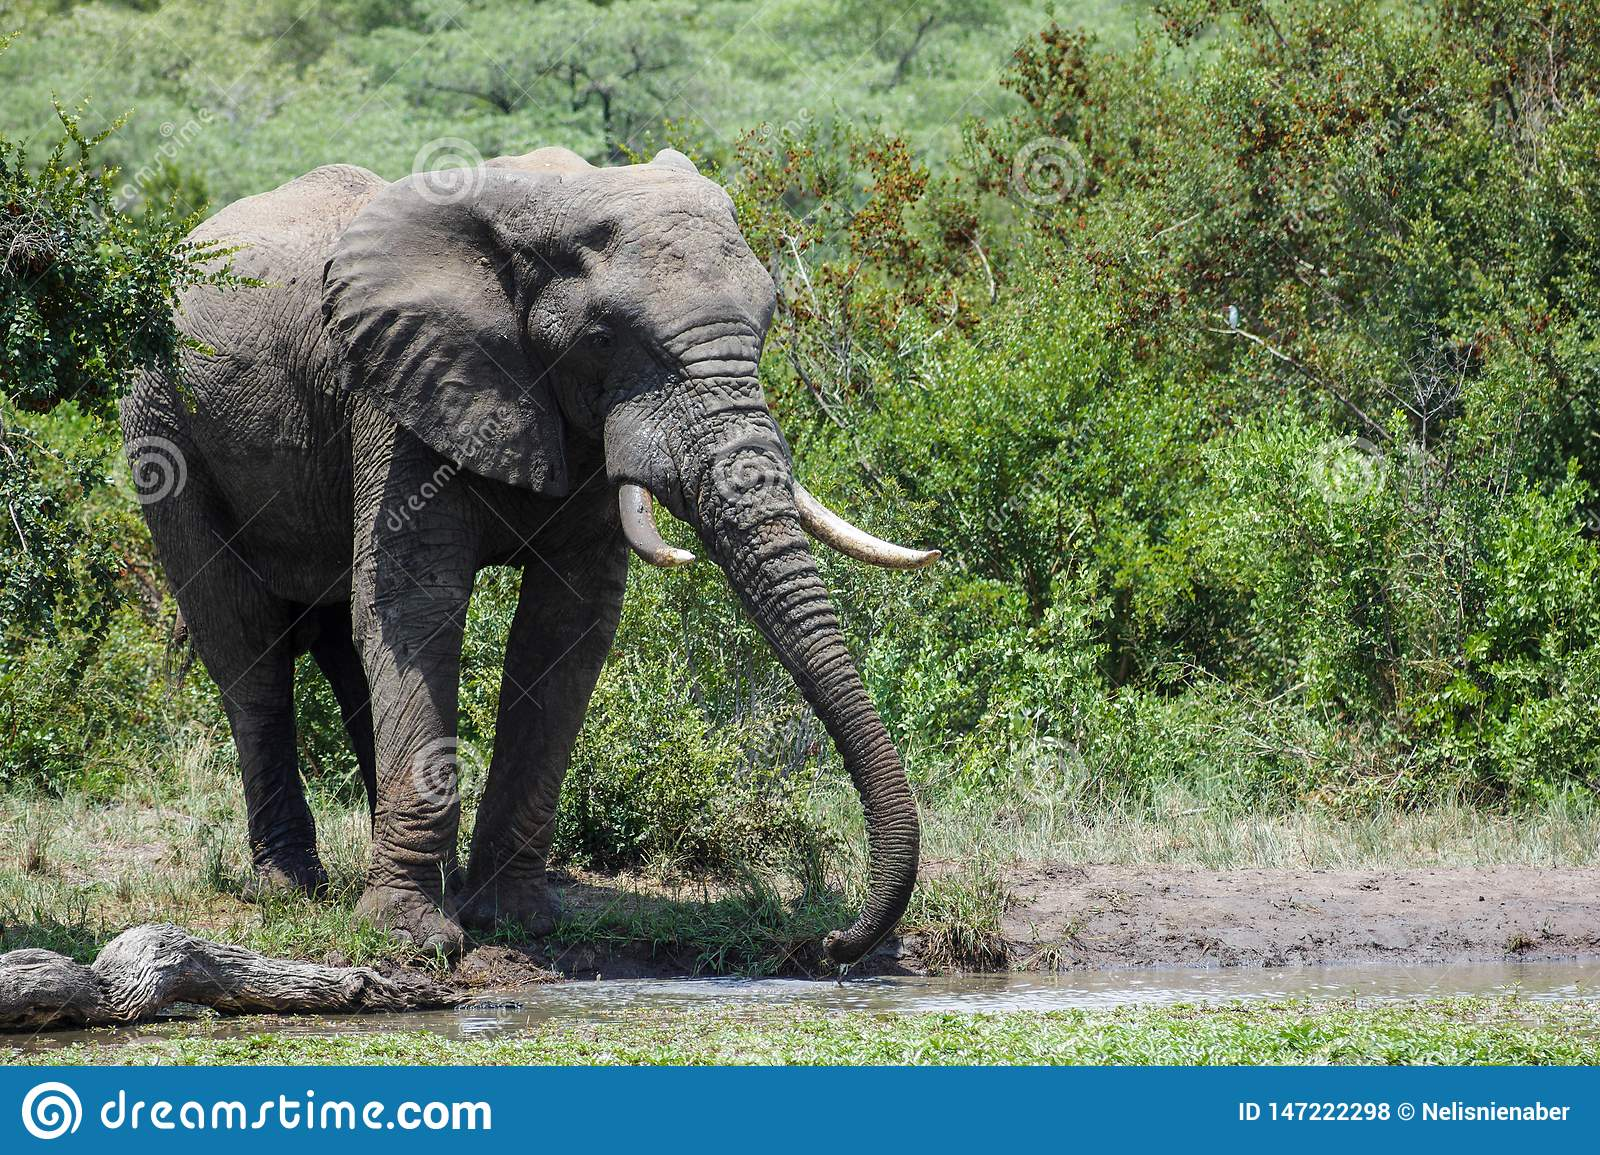 Elephant drinking water with his trunk.